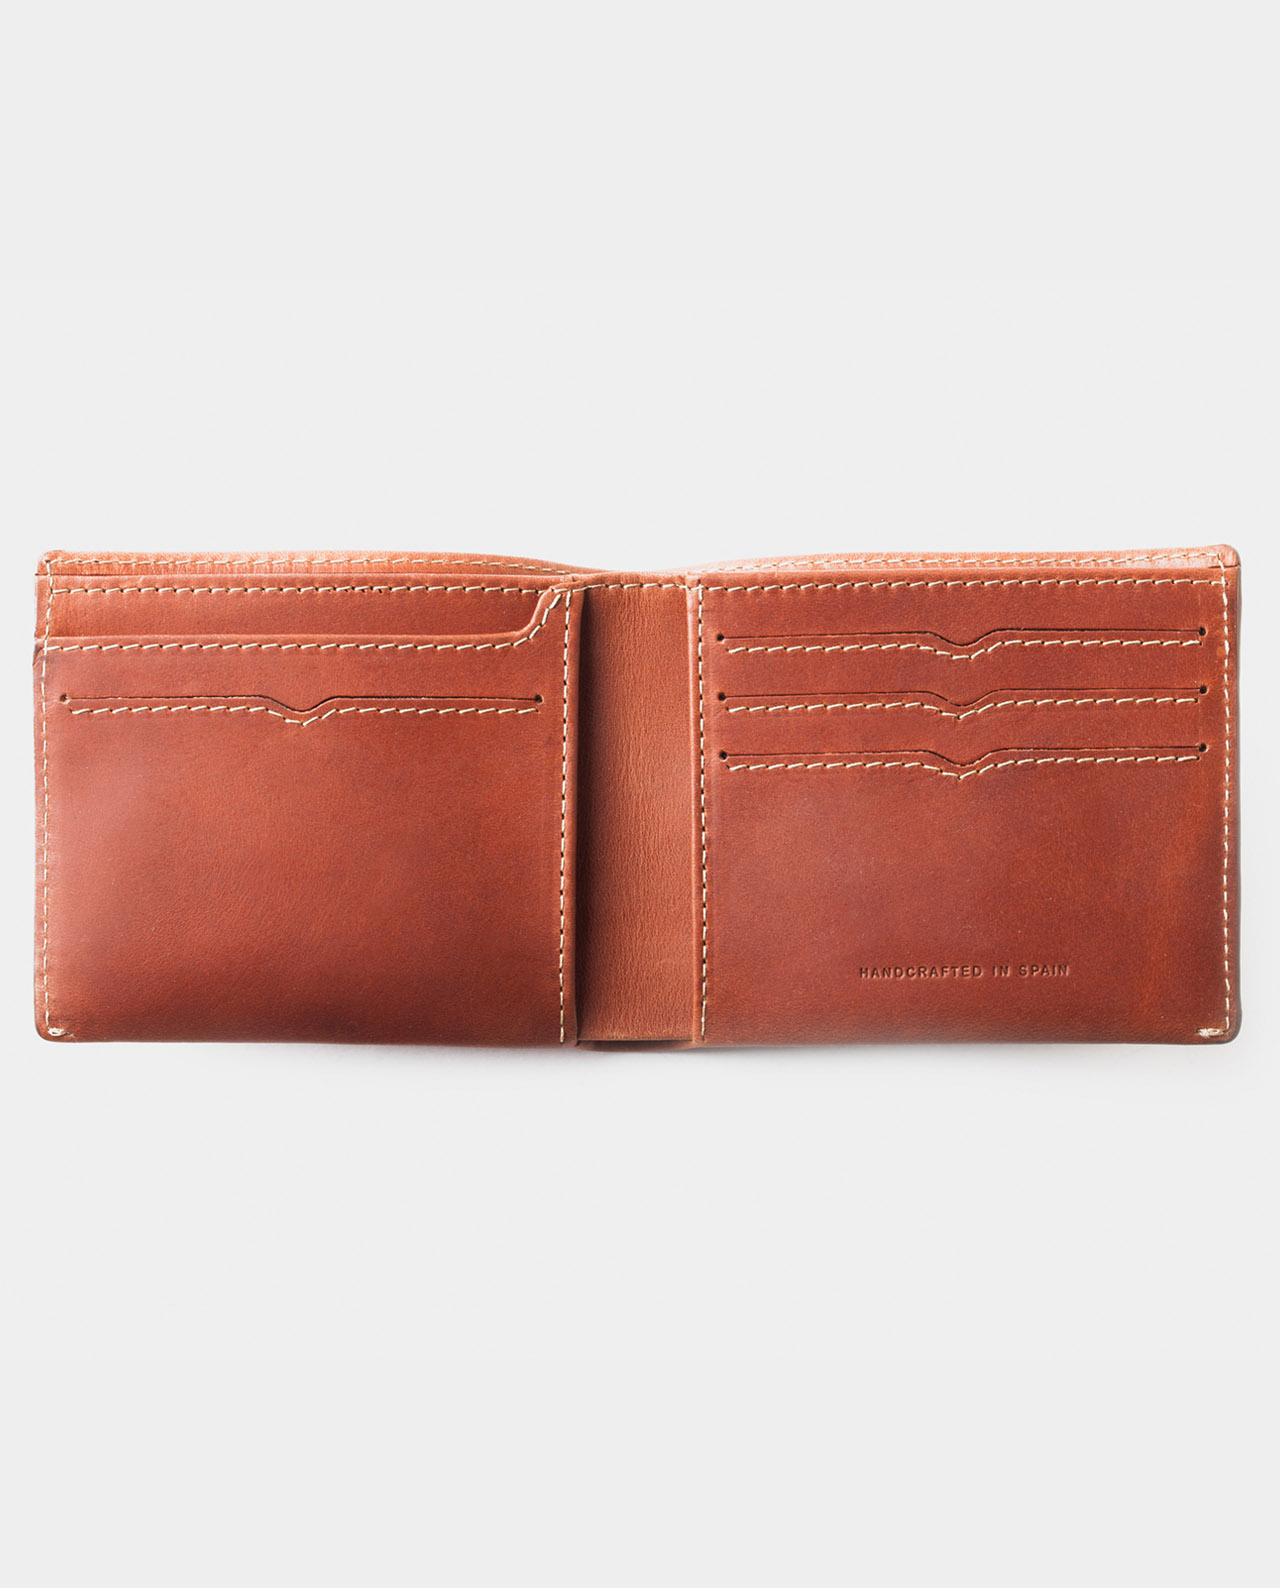 billfold wallet brown for coins and bills